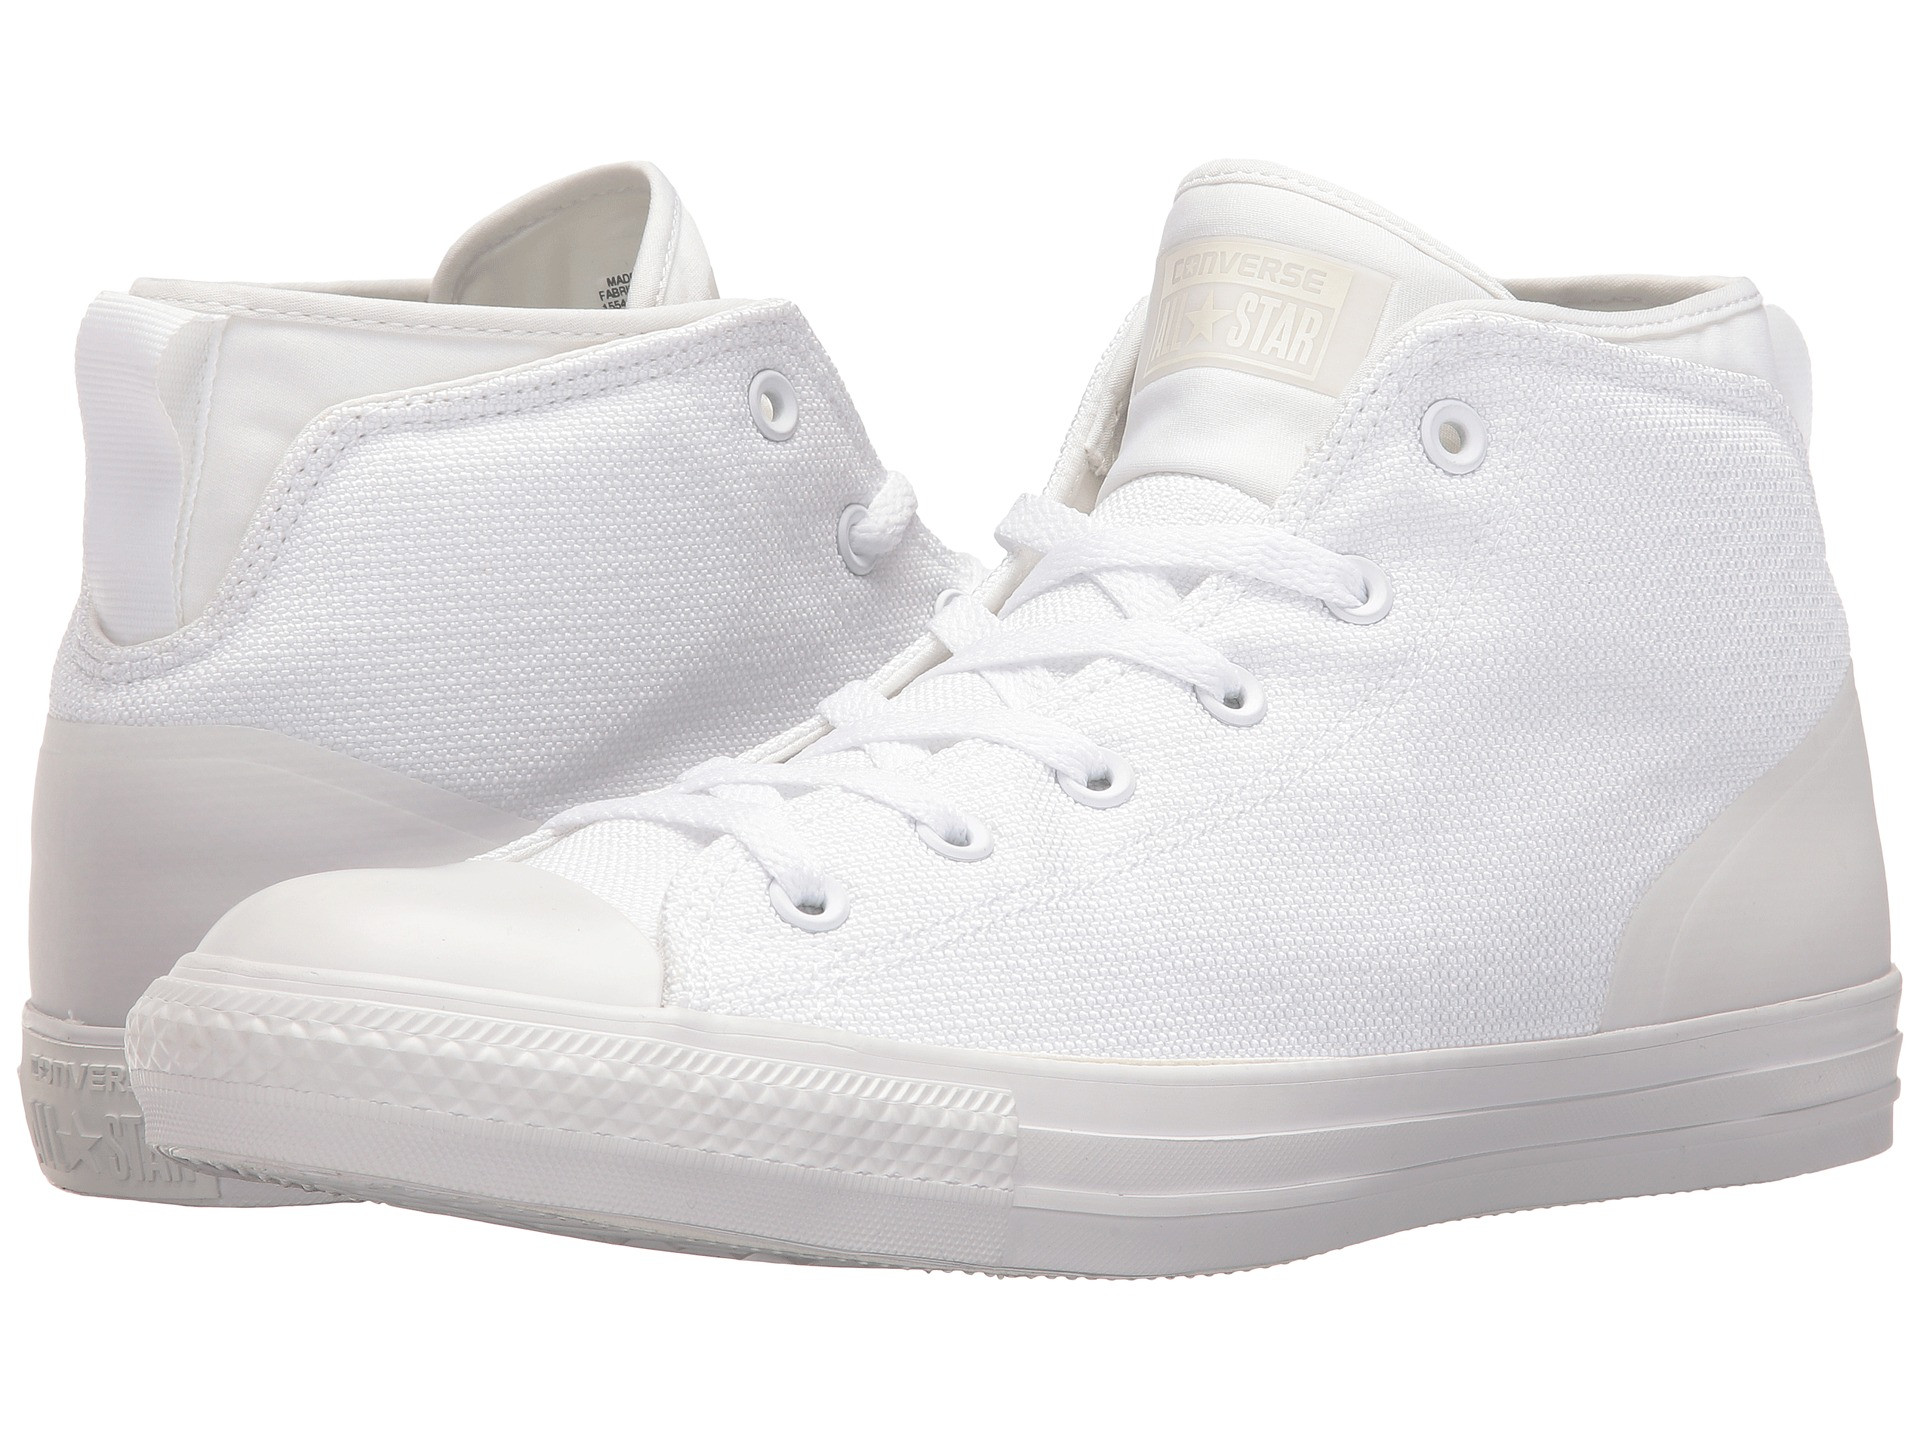 72fbbdd4bc26ff Converse Unisex Chuck Taylor All Star Syde Street Mid White Sneaker Shoes